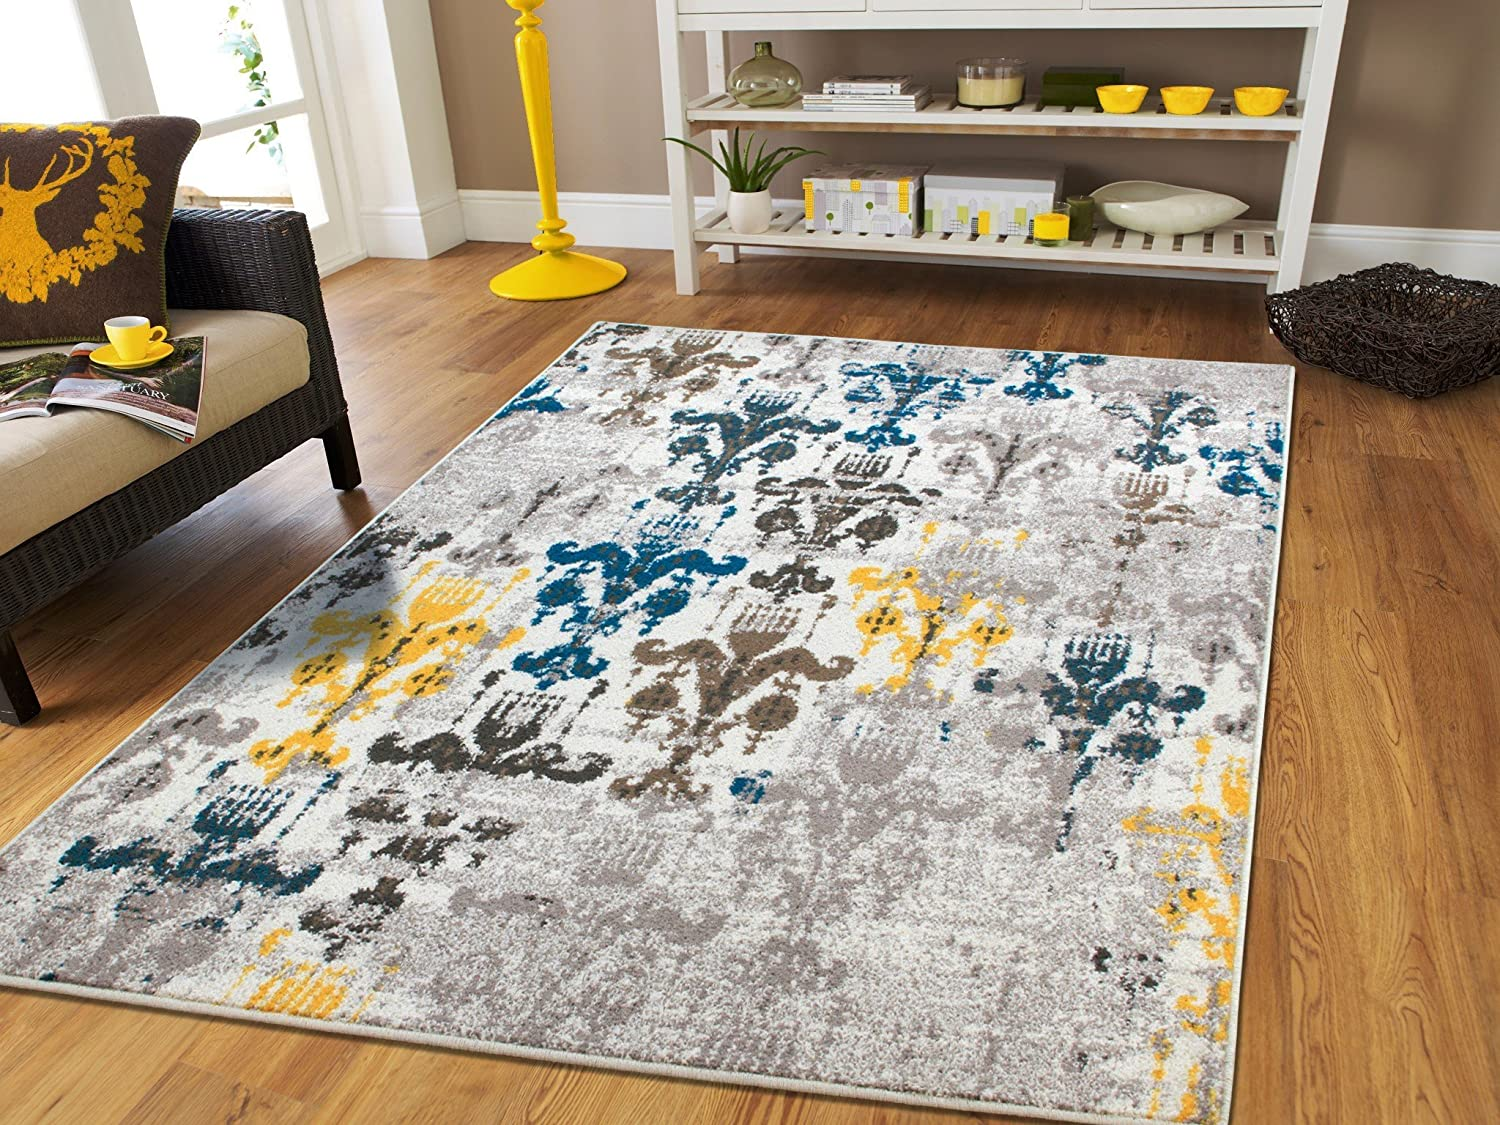 Amazon New Fashion Faded Style Floral Area Rugs Yellow Blue Beige Gray Abstract Runner Rug 2x8 Long Runners For Hallway 2x7 Narrow Hall Carpet